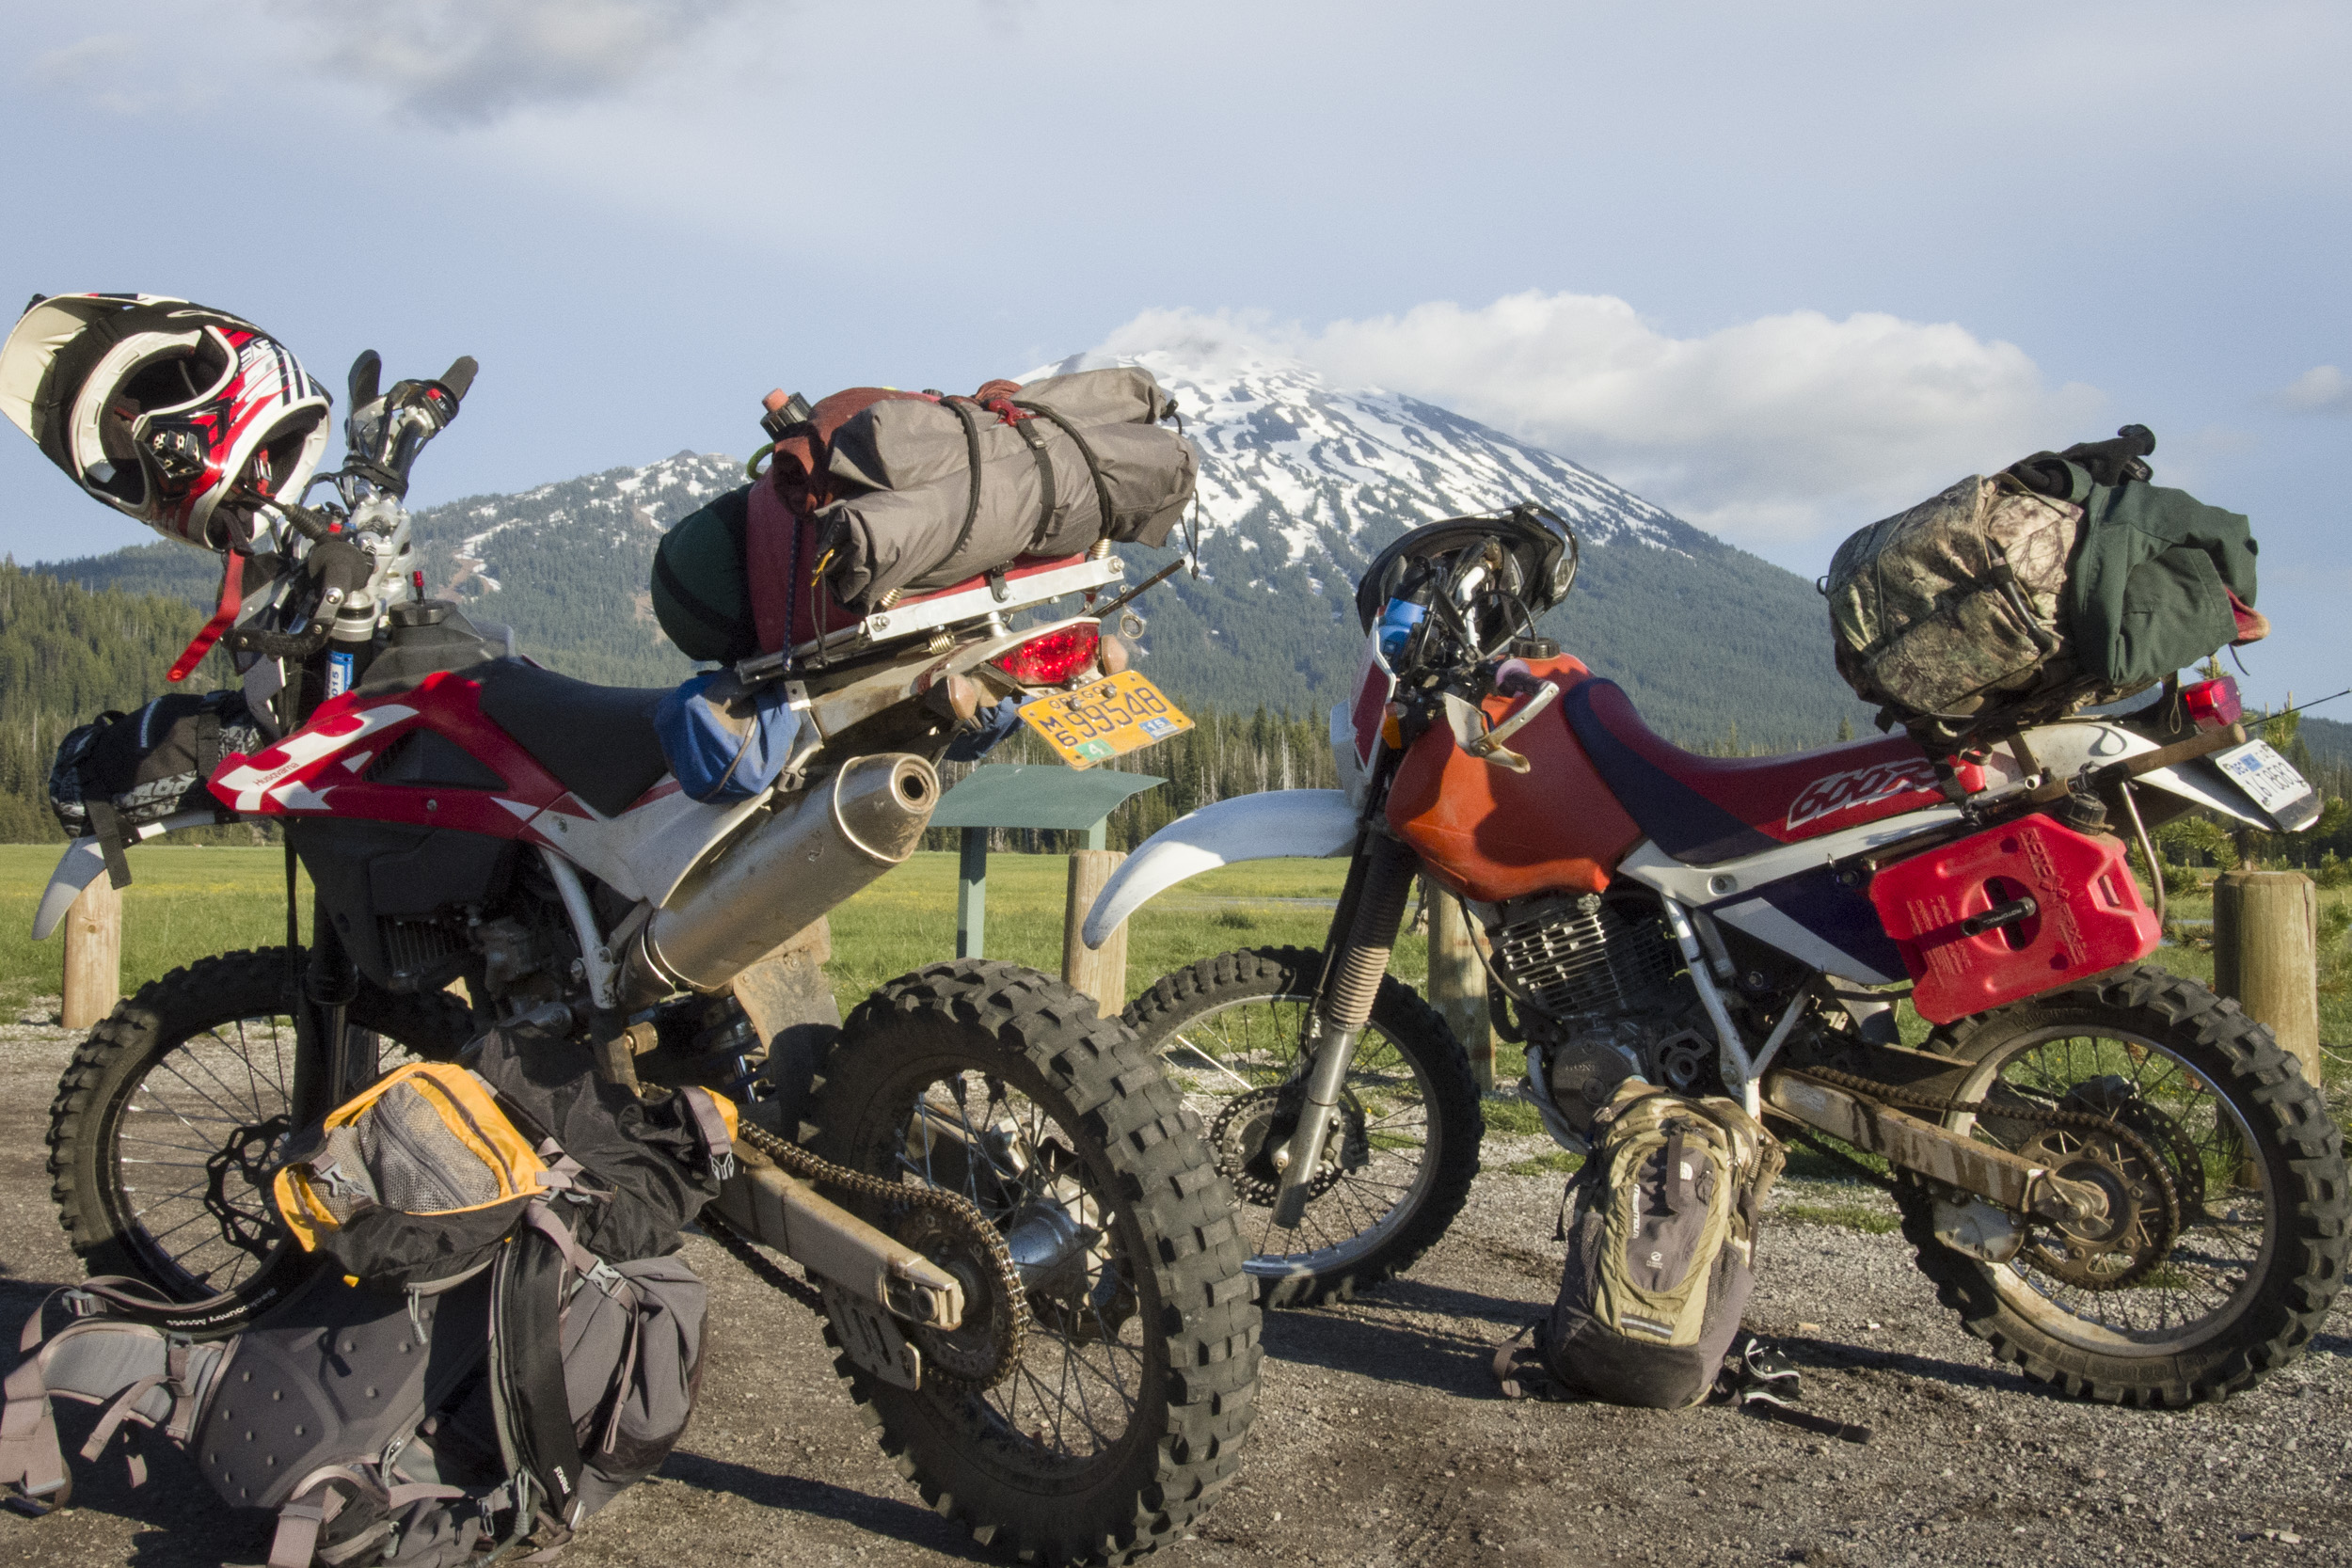 Moto camping with Dave Reuss of  dailyshredder.com